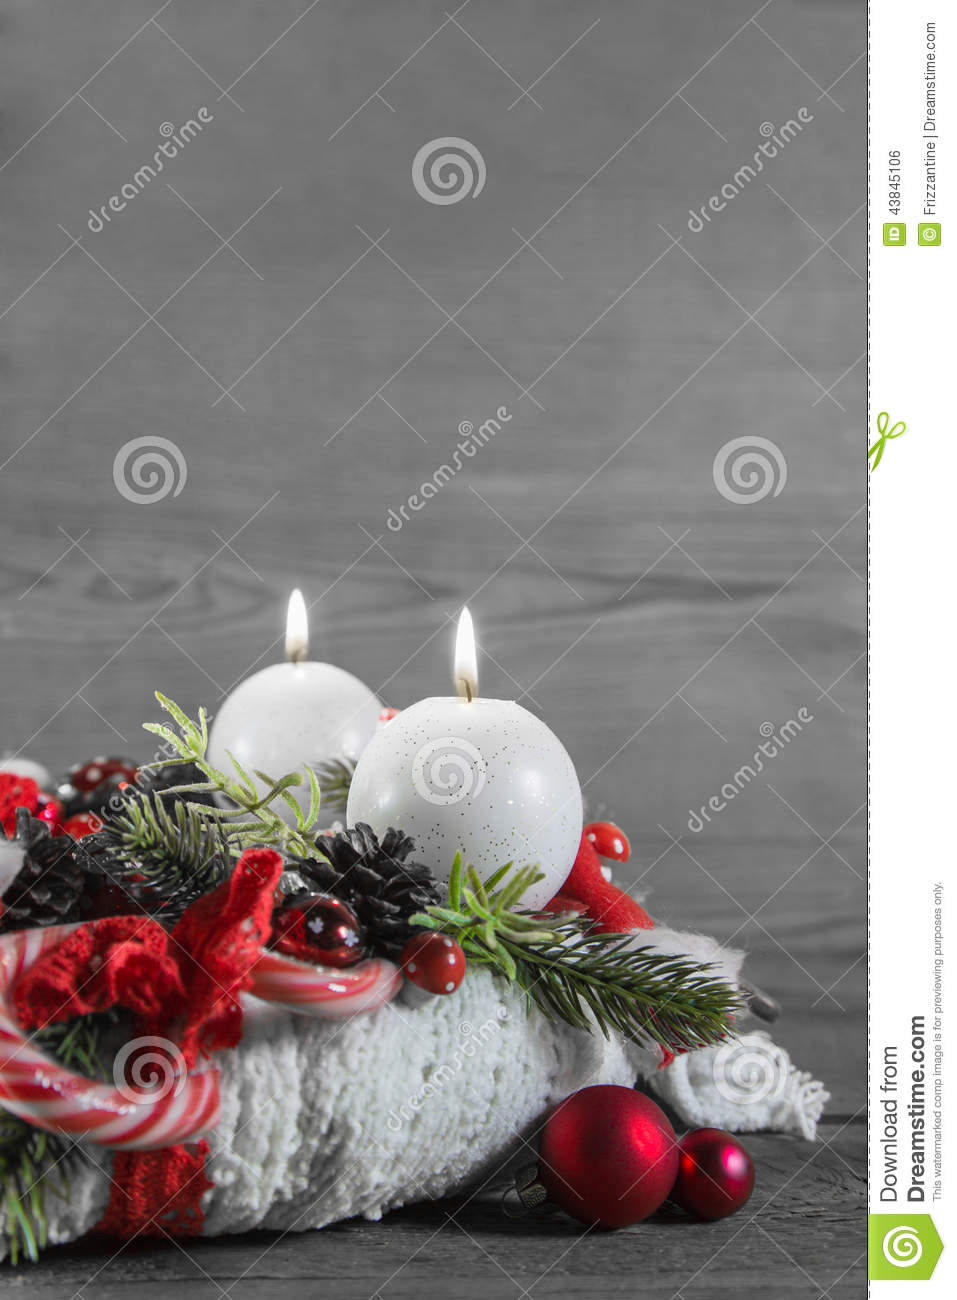 Bilder Zum Advent Second Advent Two Red Burning Candles On Wooden Shabby Background